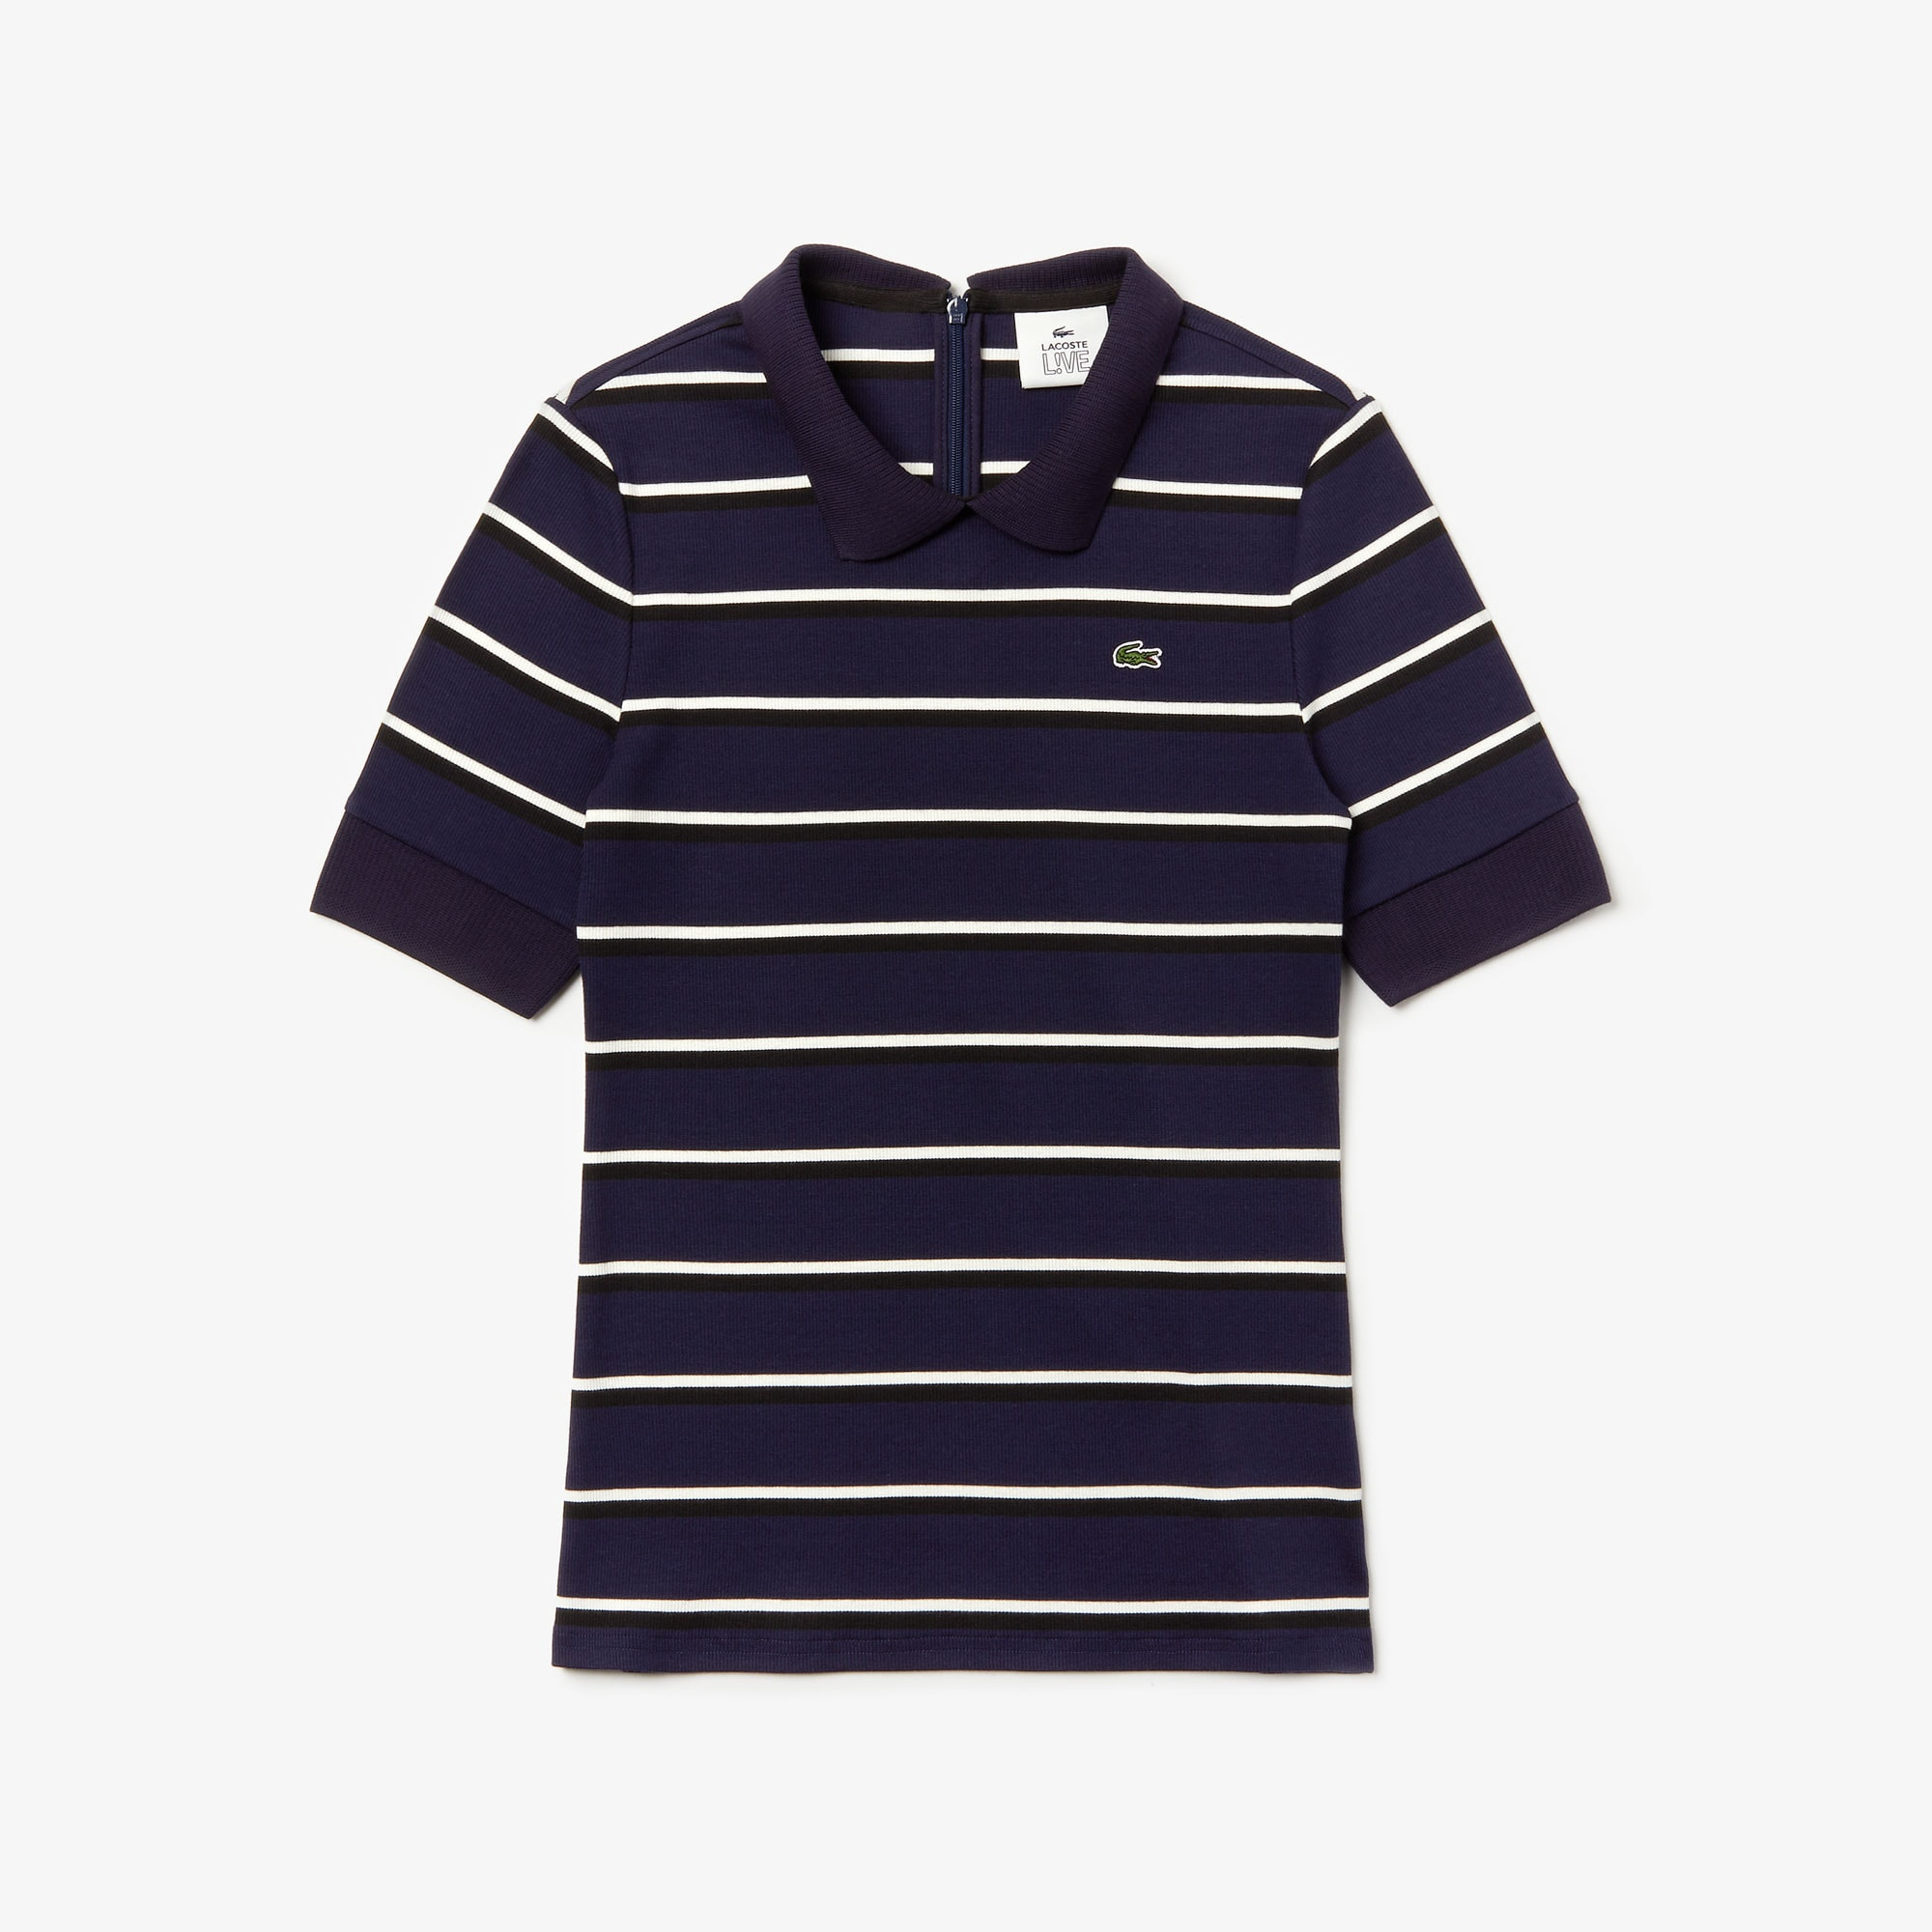 store sorter billig pris officiel Women's Lacoste LIVE Slim Fit Striped Ribbed Knit Polo Shirt